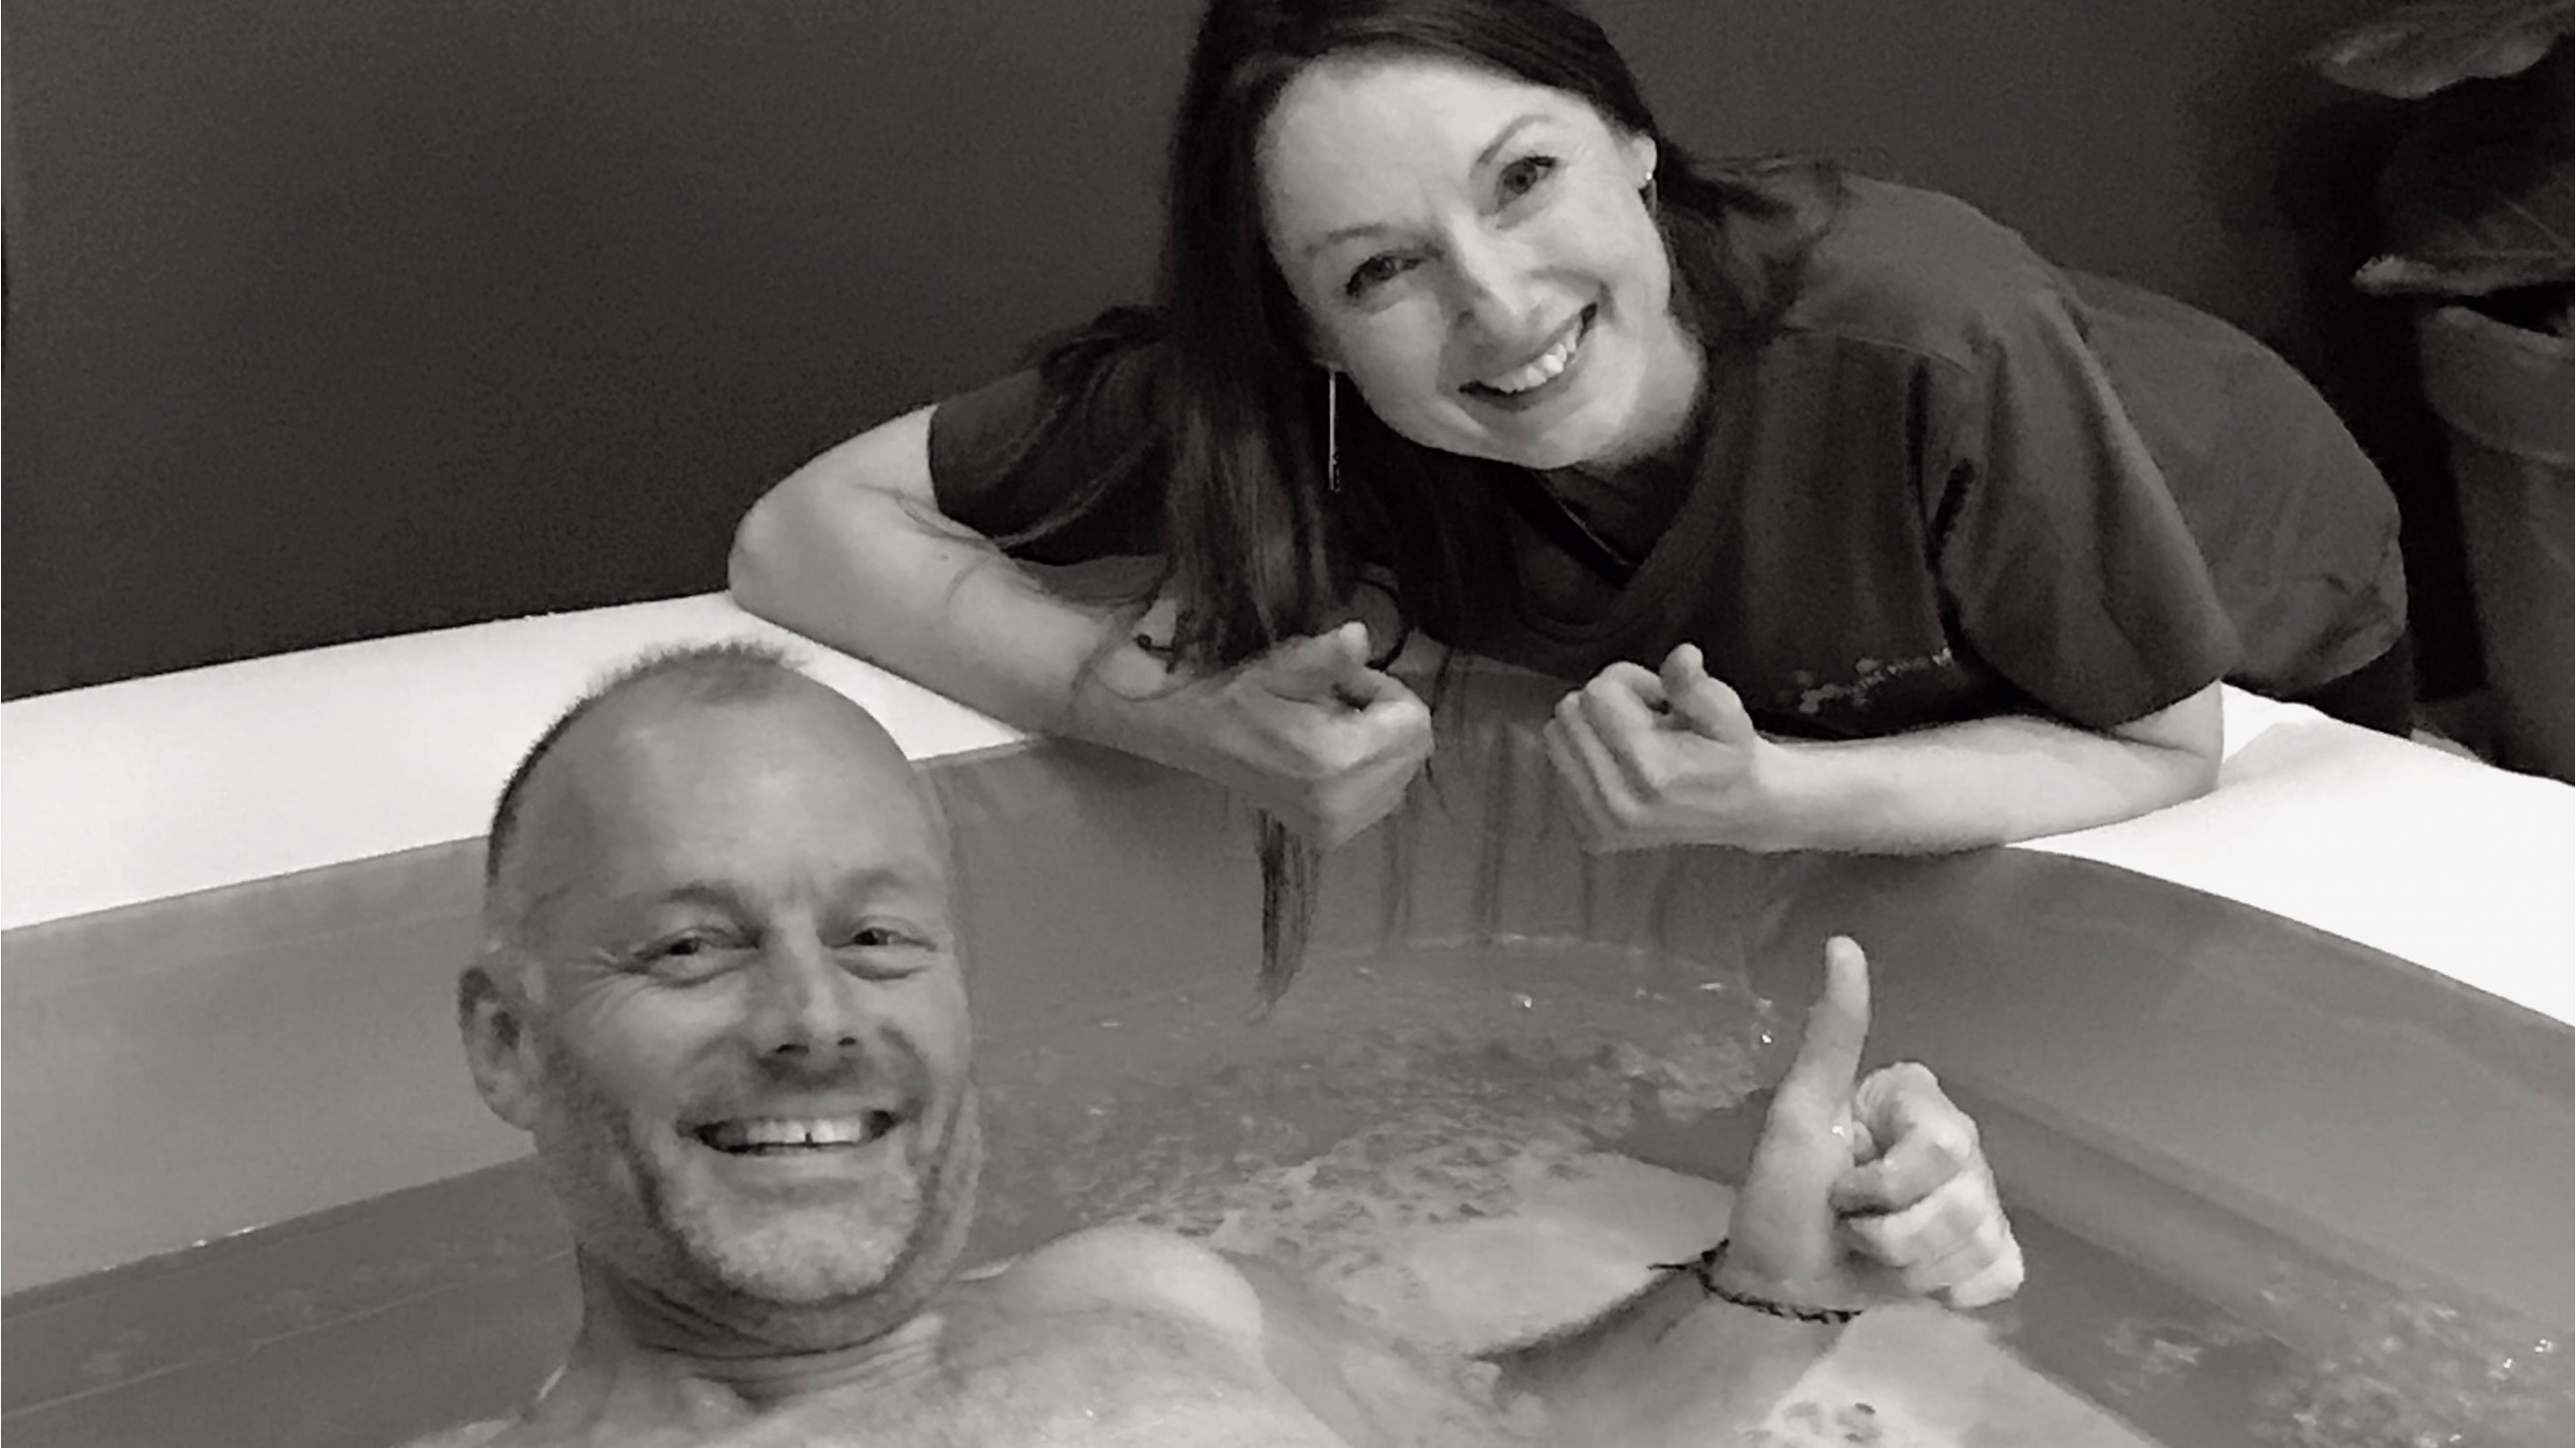 Image 10 of 13 - Experience the Wim Hof Method to get an impression of  at